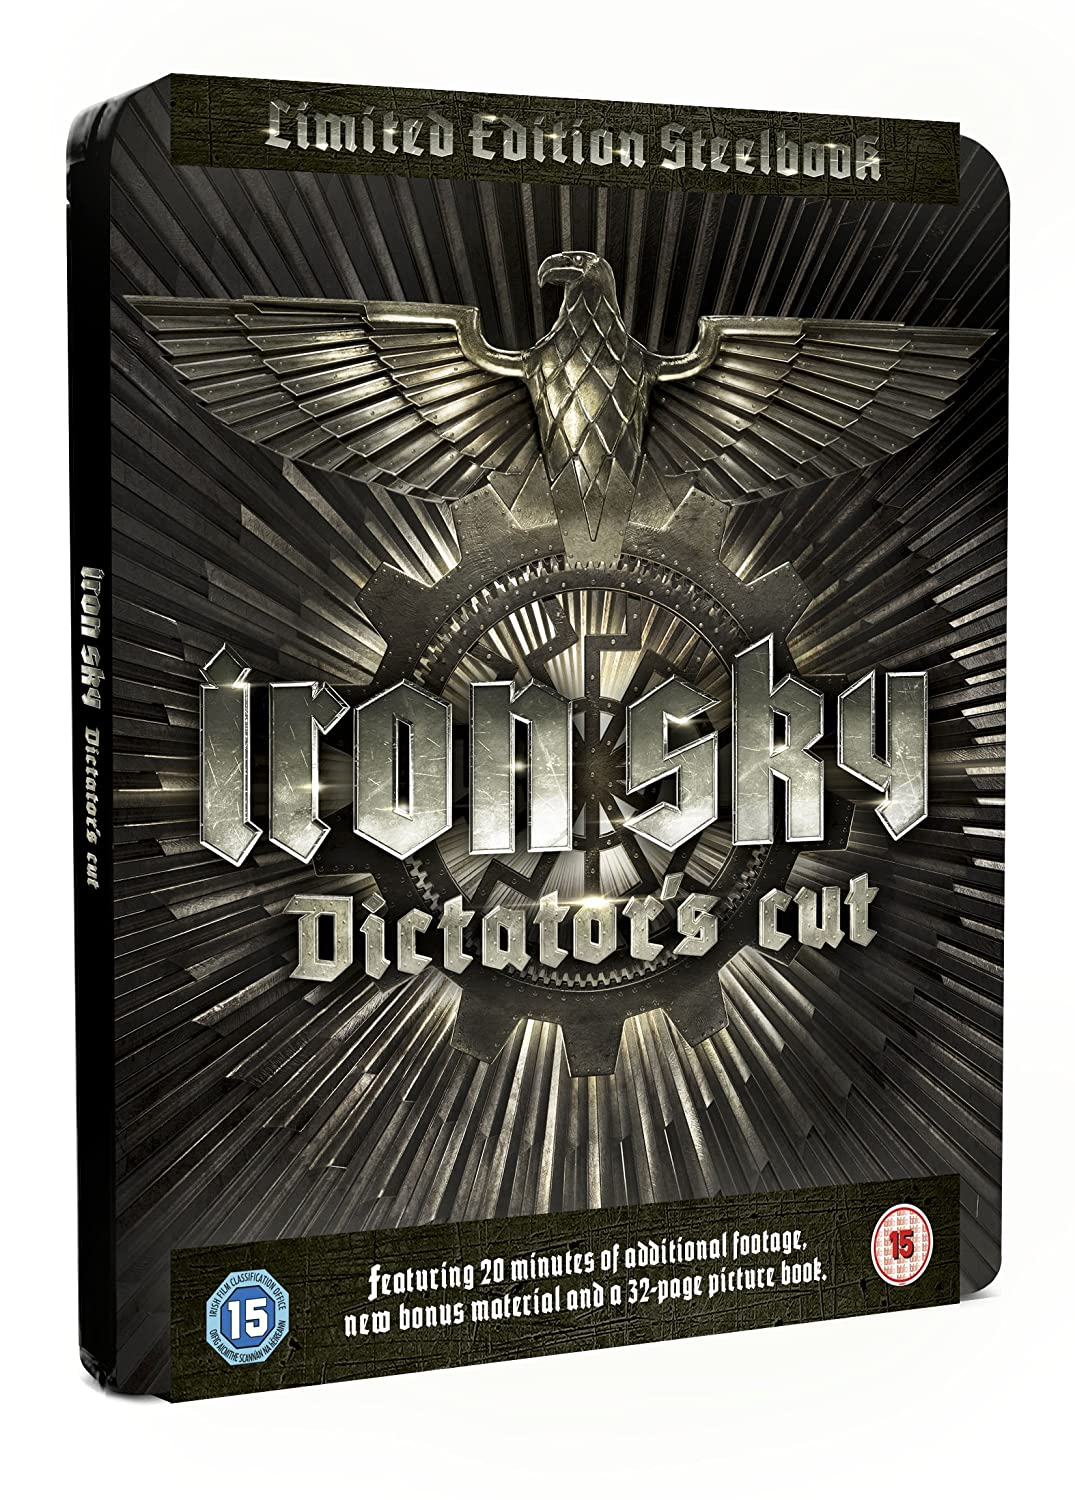 Iron Sky: Dictators Cut - Limited Edition Embossed Steelbook Blu-ray Reino Unido: Amazon.es: Julia Dietze, Udo Kier, Peta Sergeant, Kym Jackson, Götz Otto, ...